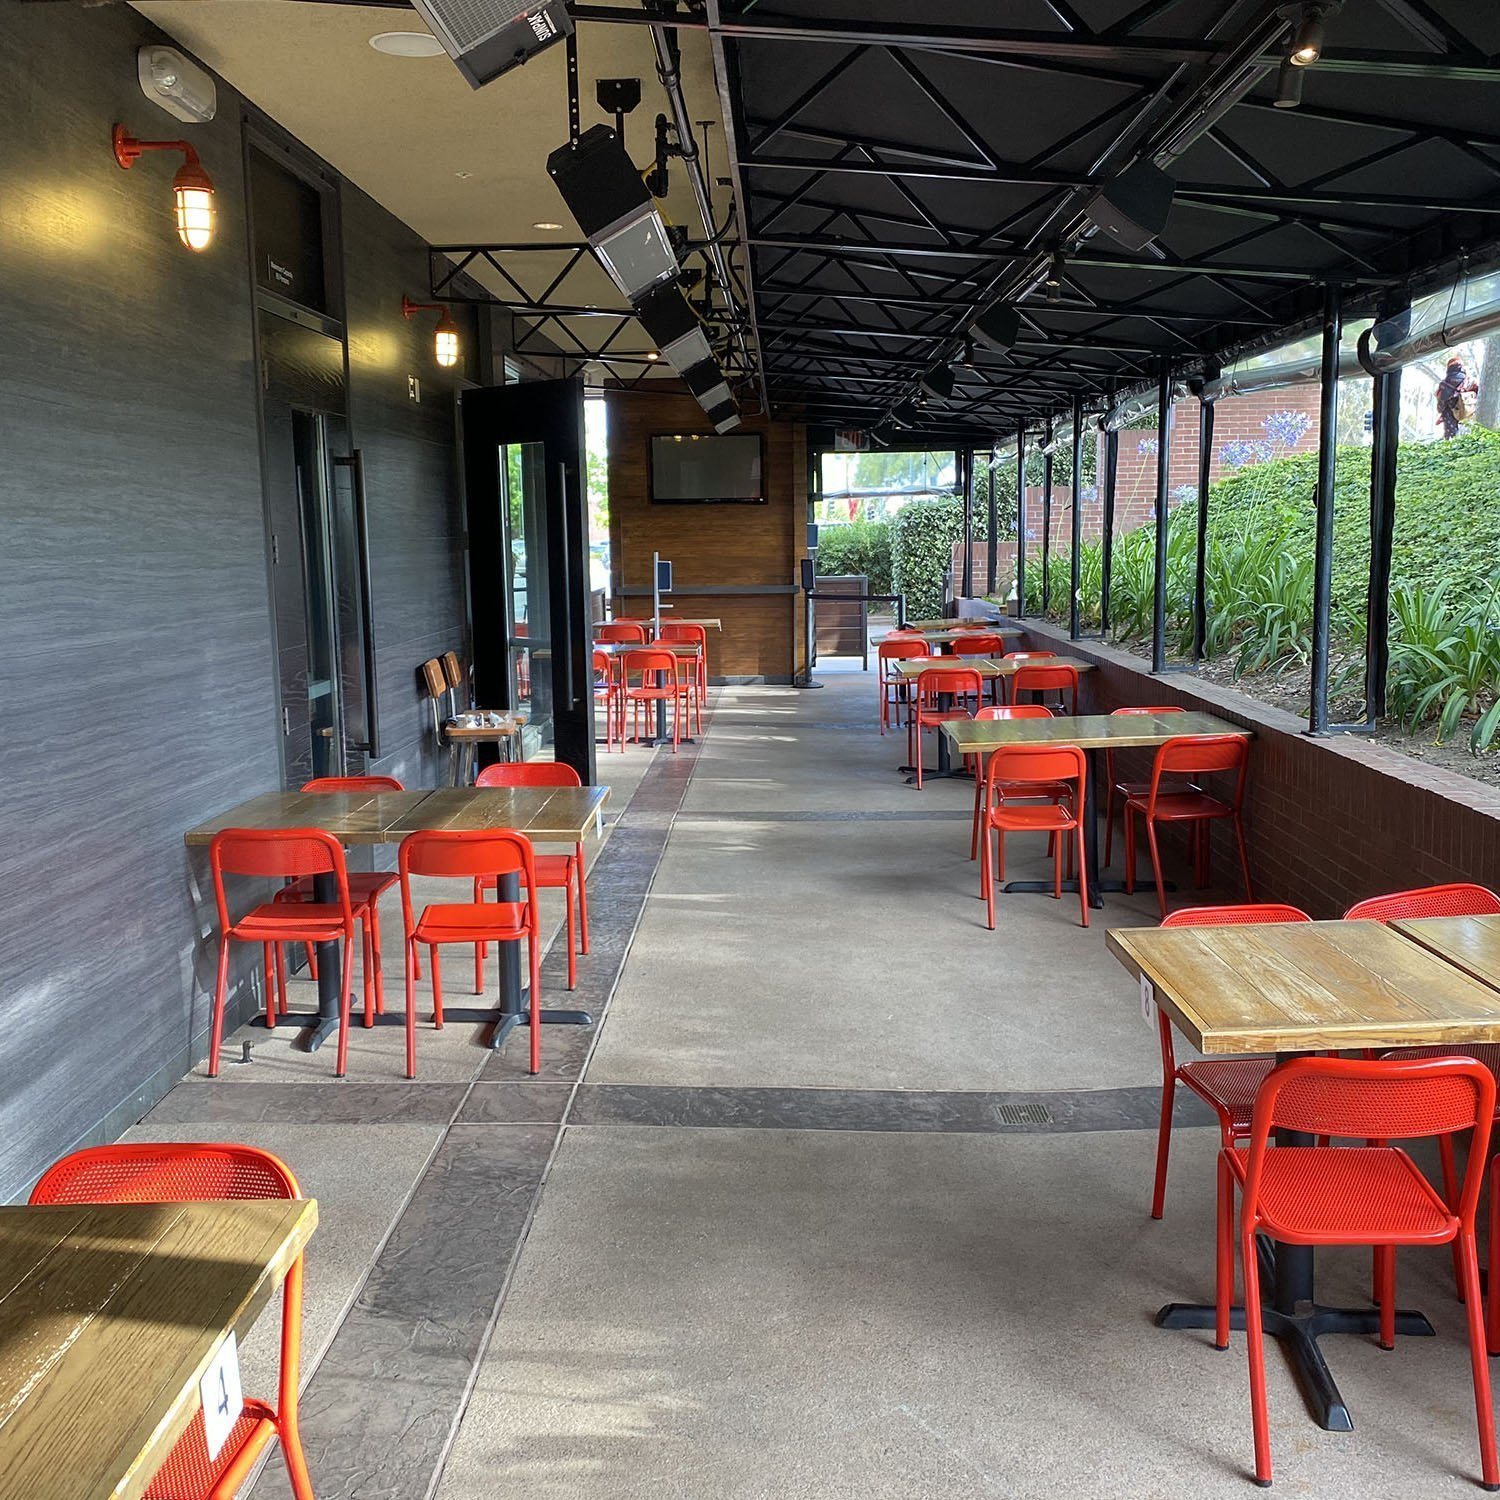 Regents Pizza - Garden Patio